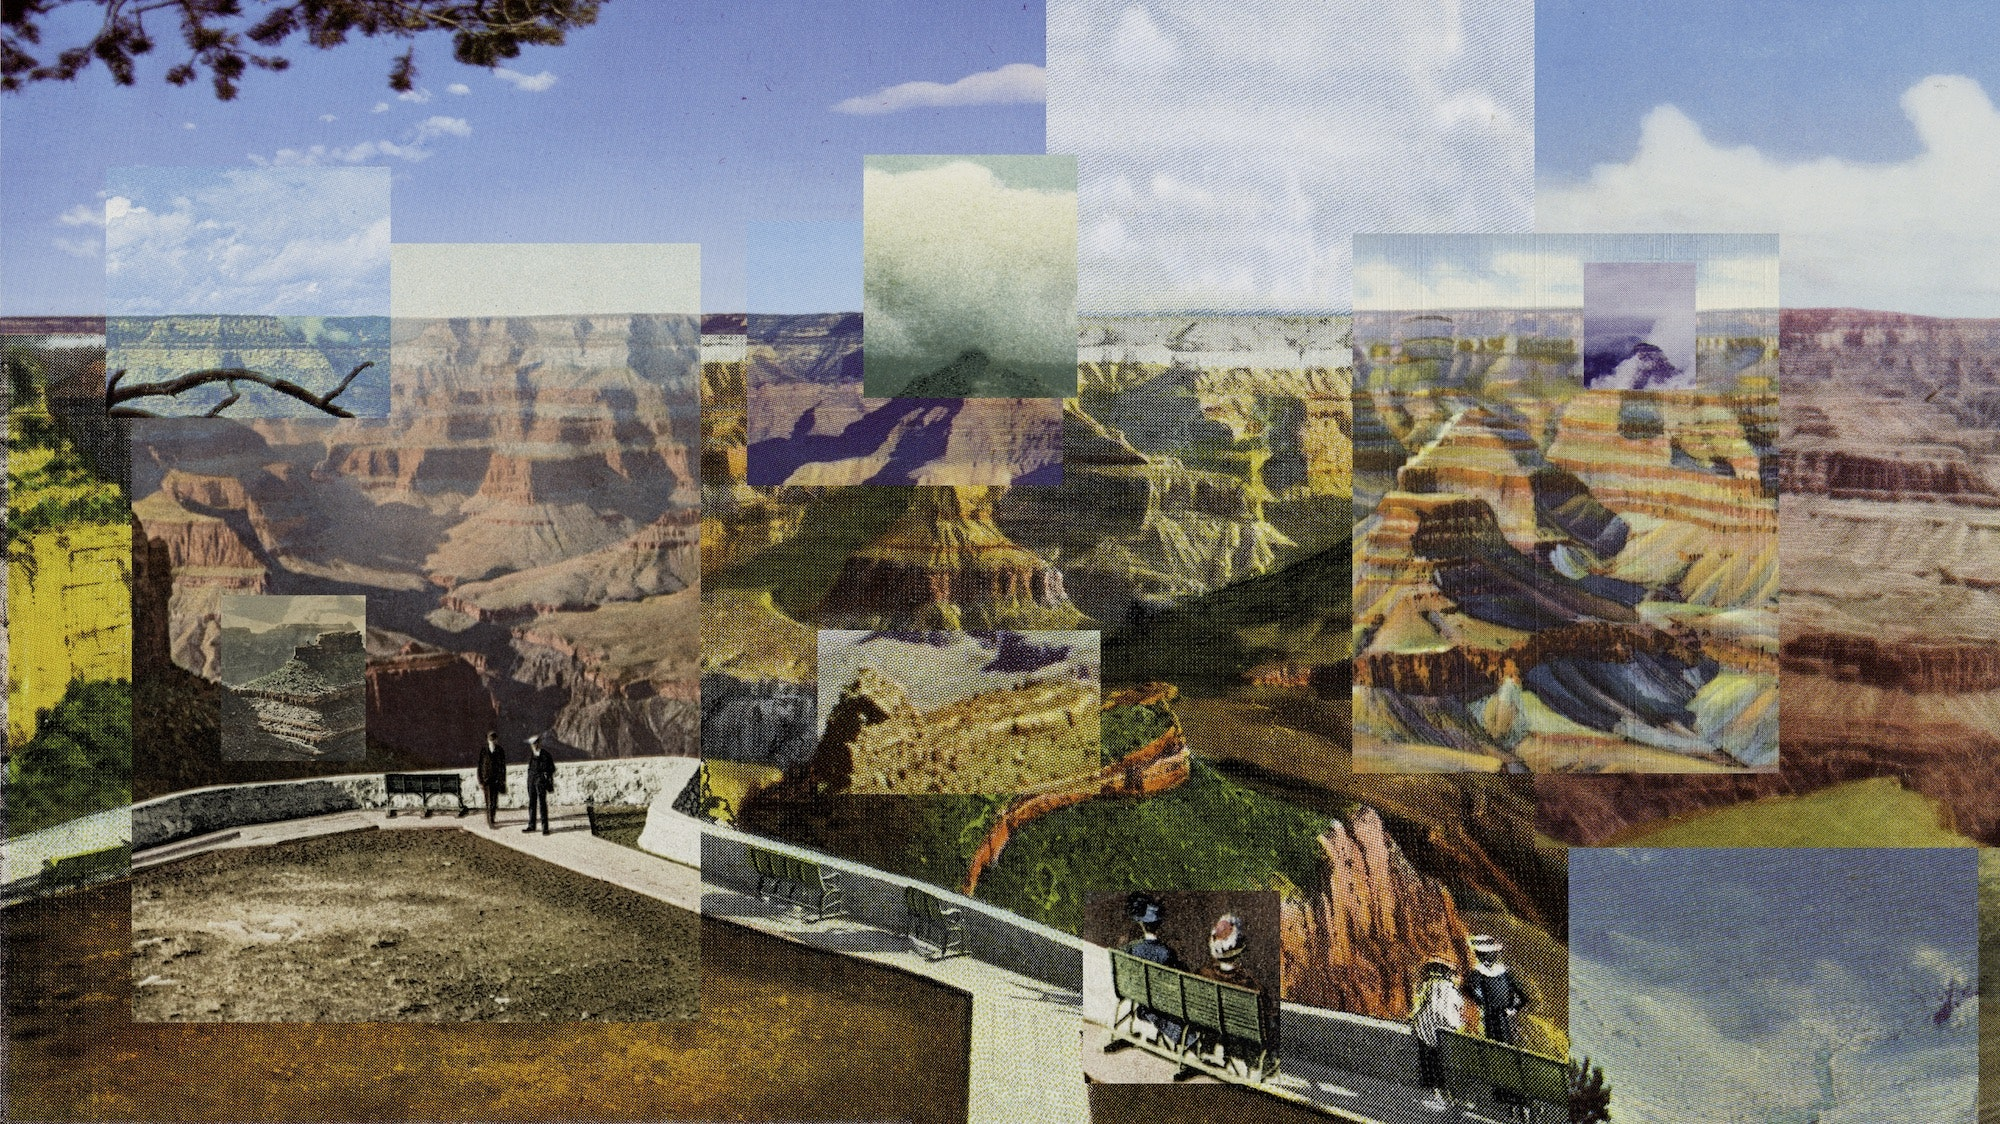 Reconstructing the view from the El Tovar to Yavapai Point using nineteen postcards, Grand Canyon National Park